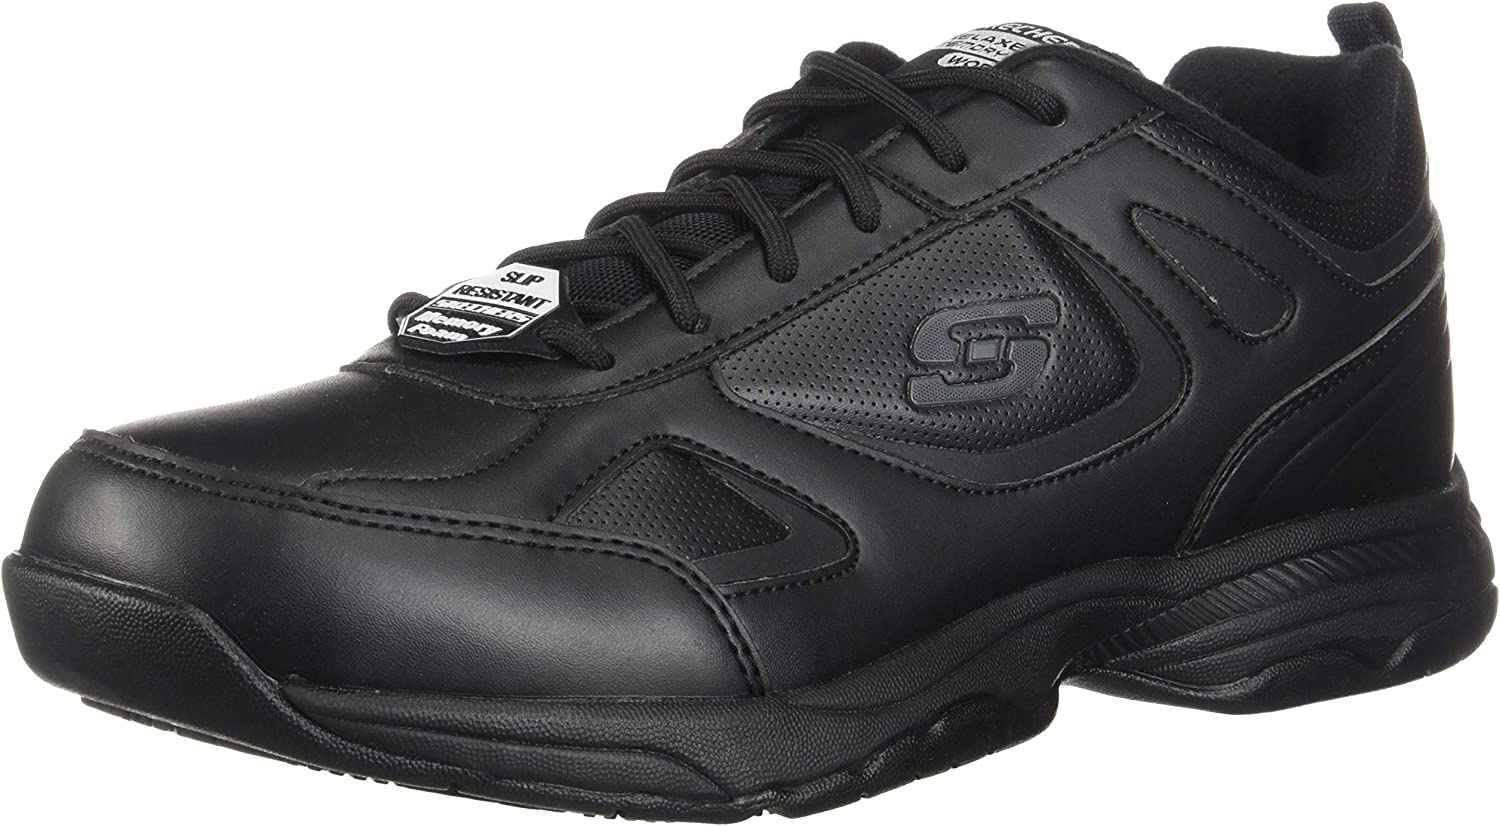 Skechers Dighton - Bricelyn Sr Black Blk Womens Walking Shoe Size 12M